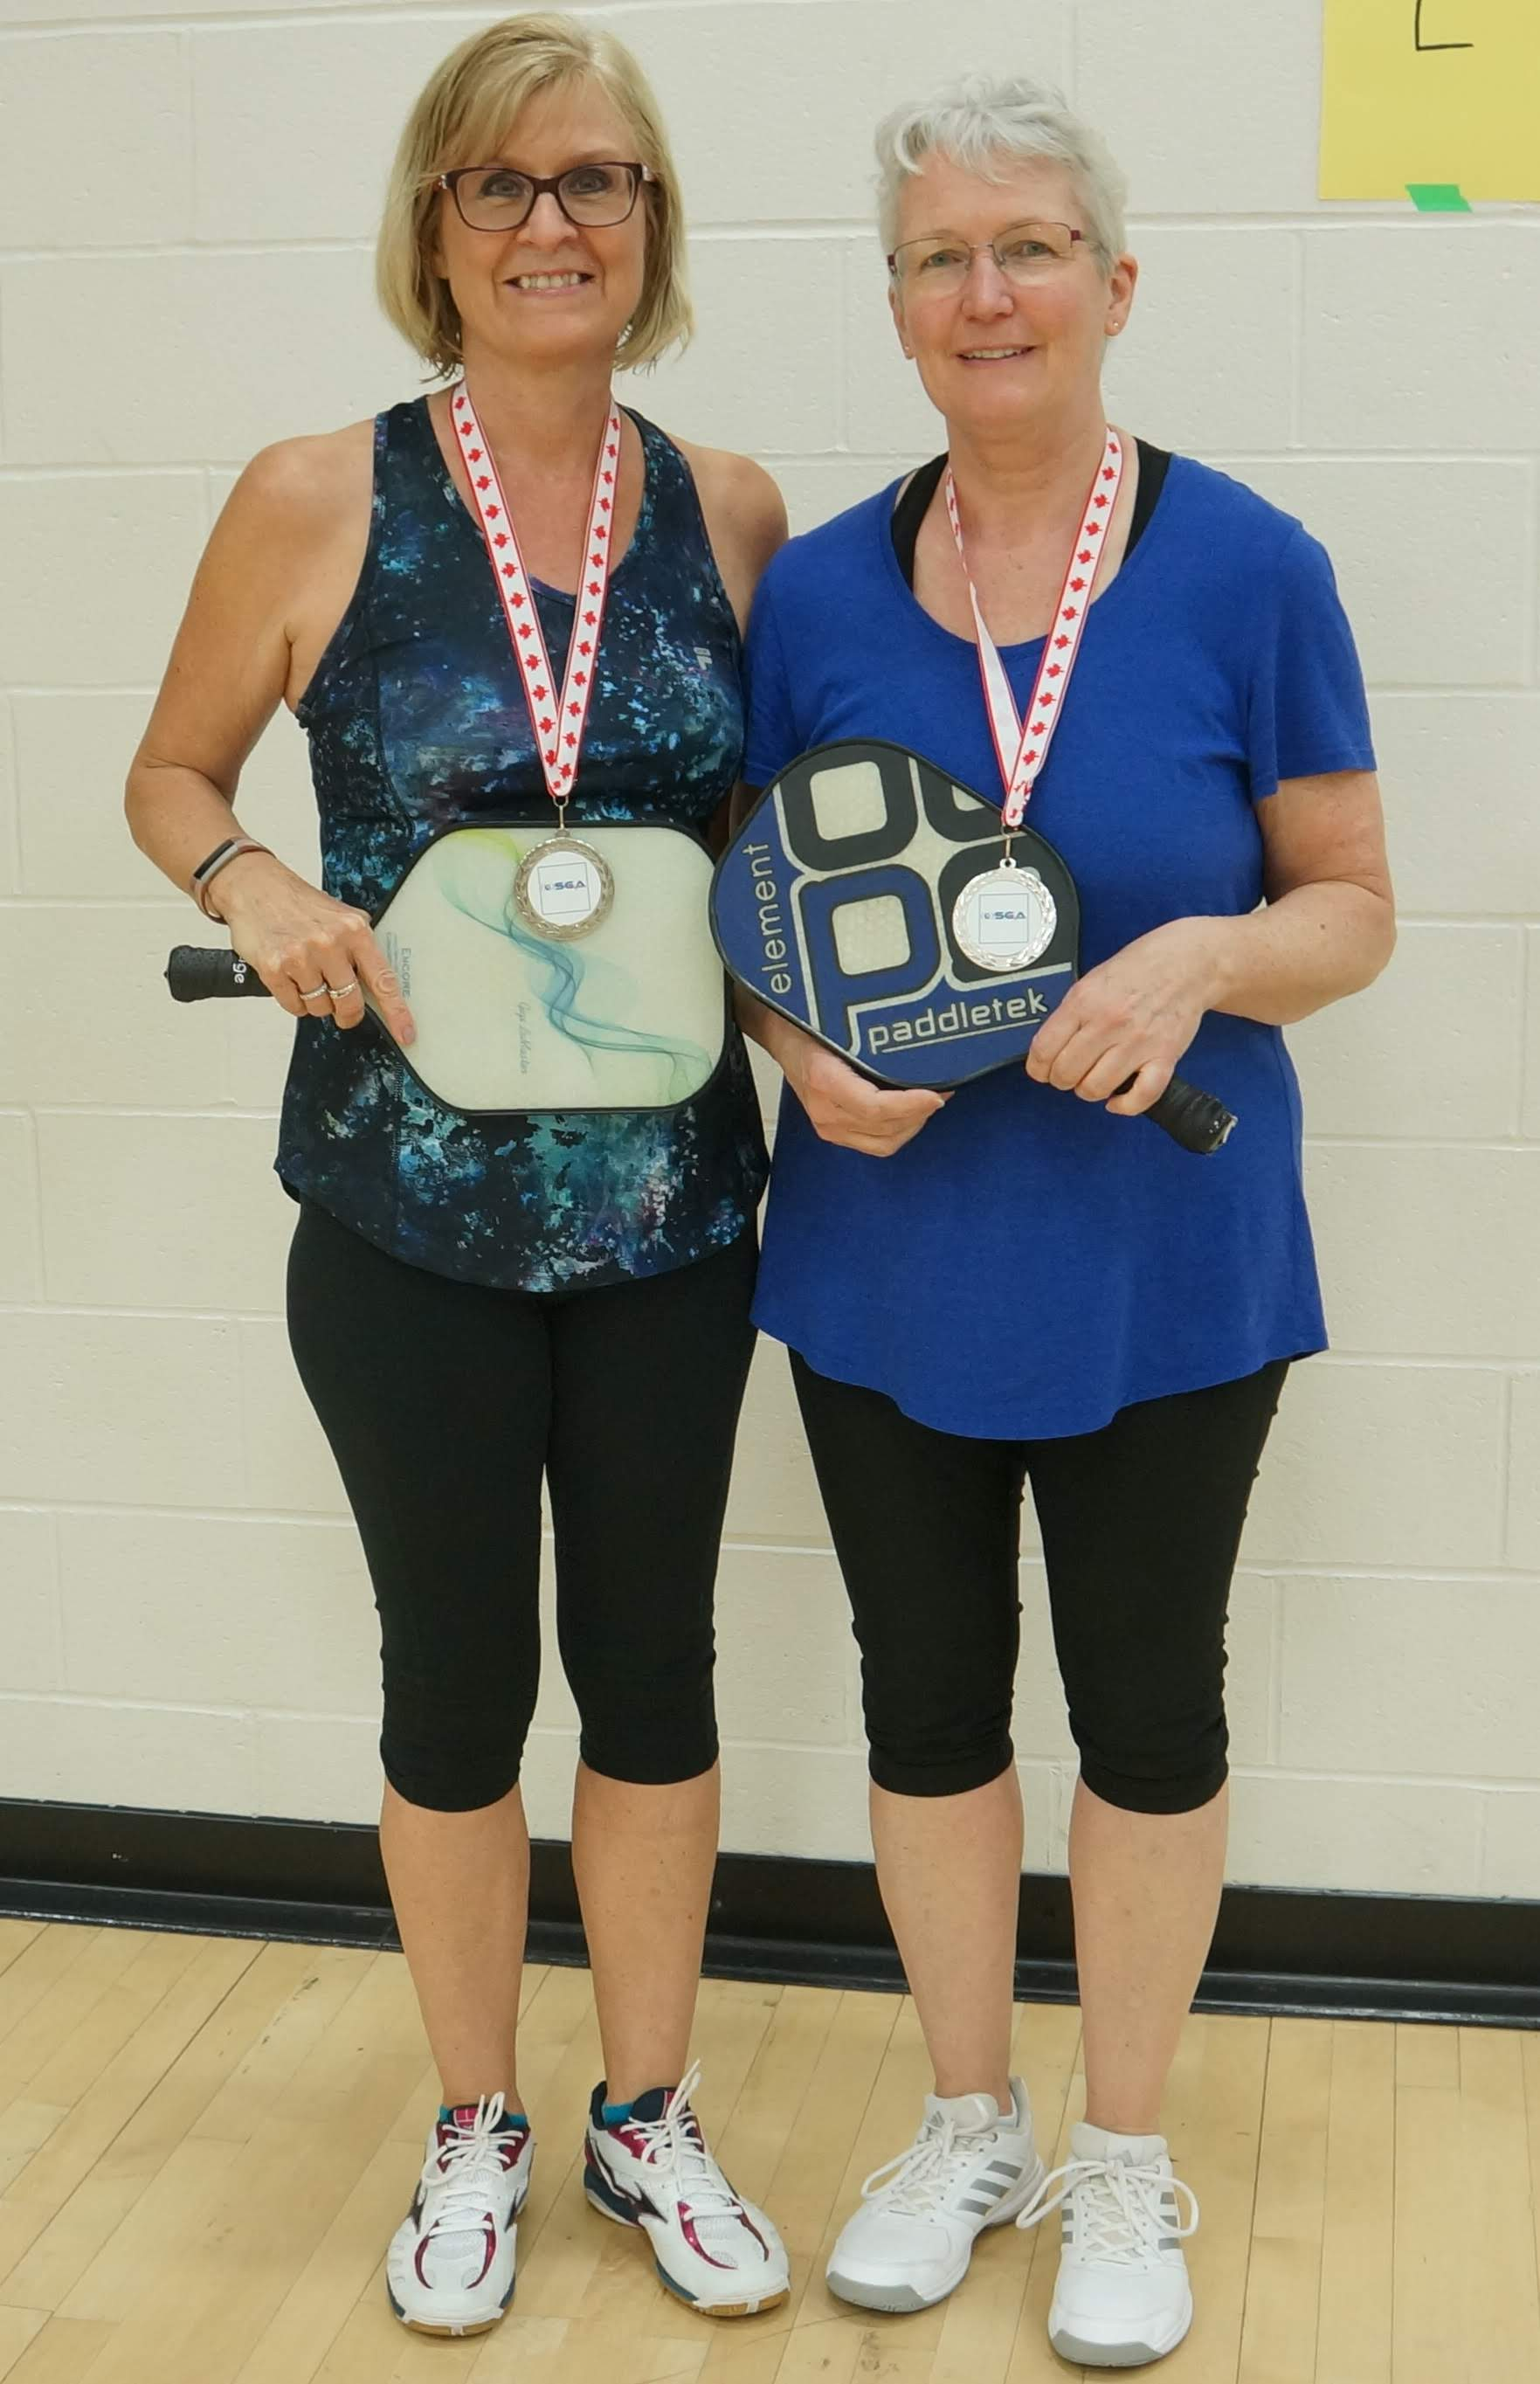 Pickleball Silver Arlene D and Joanne J